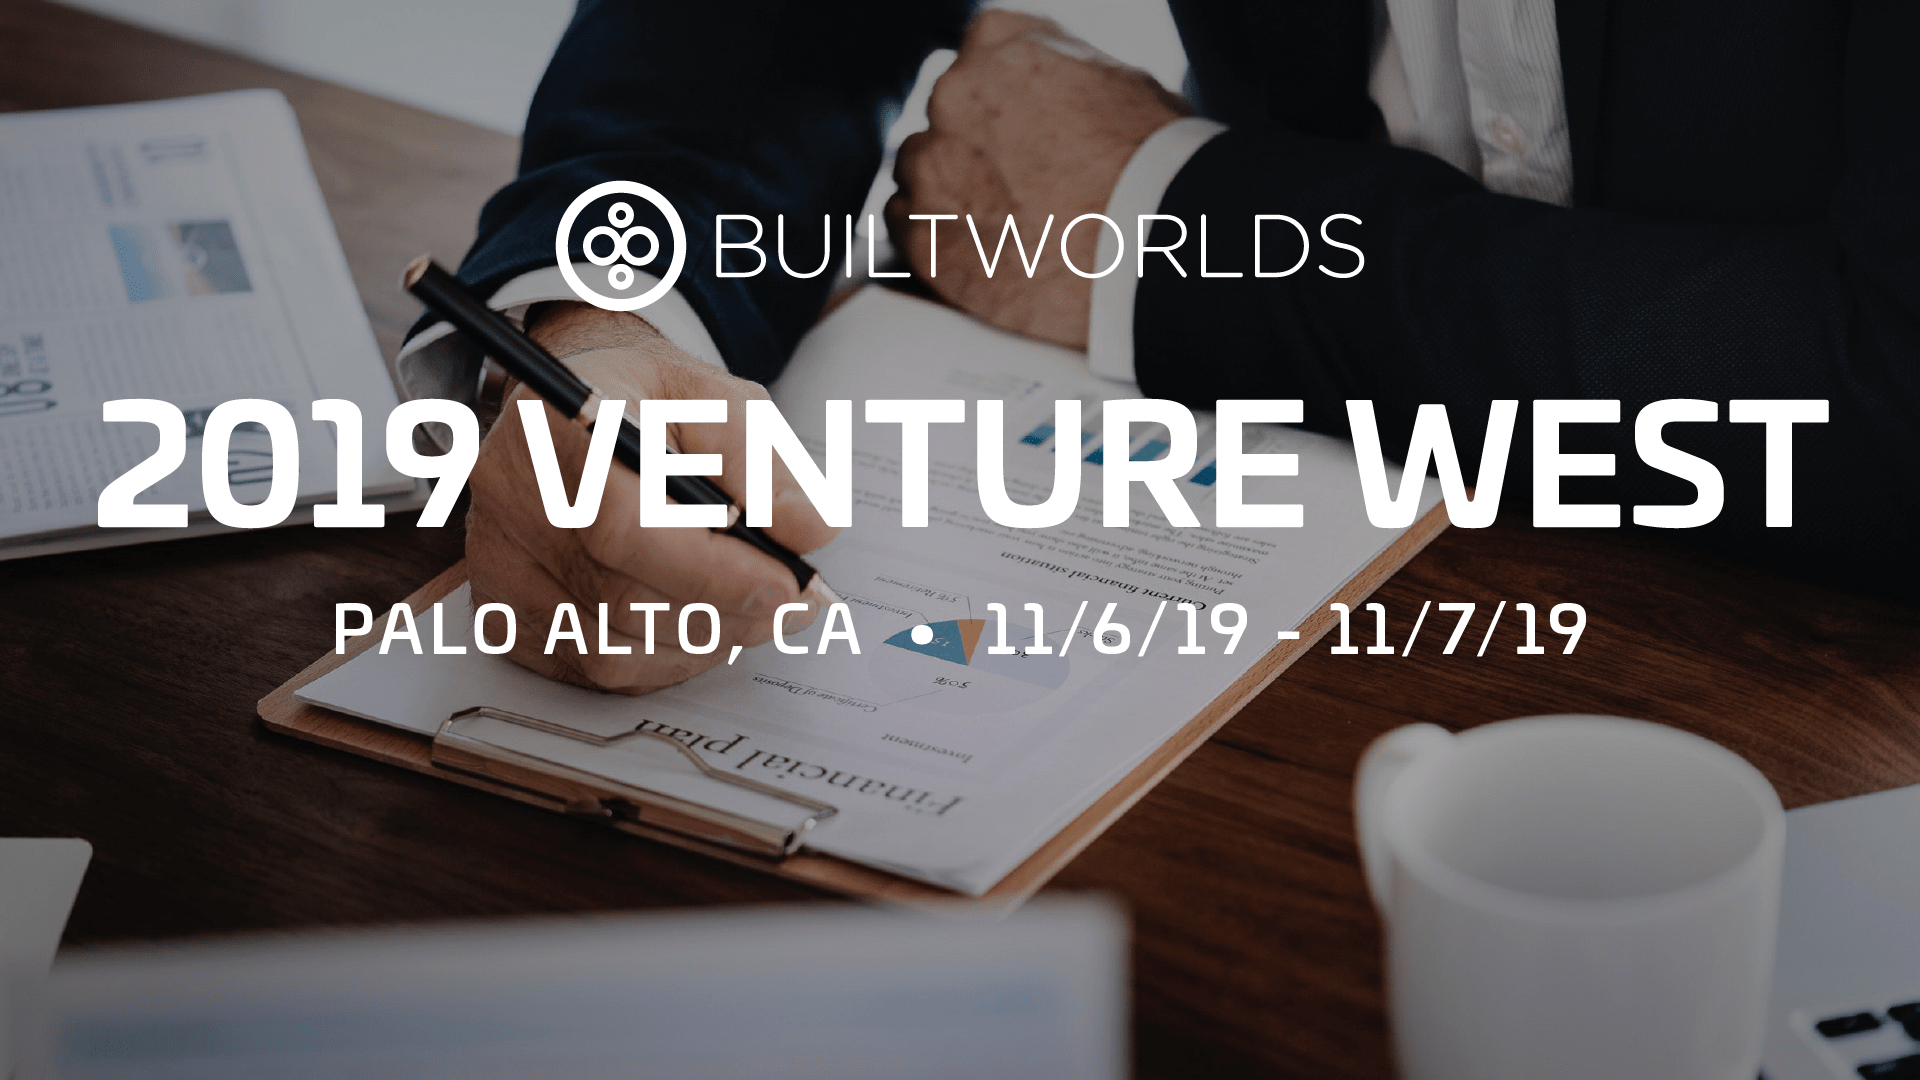 BuiltWorlds 2019 Venture West